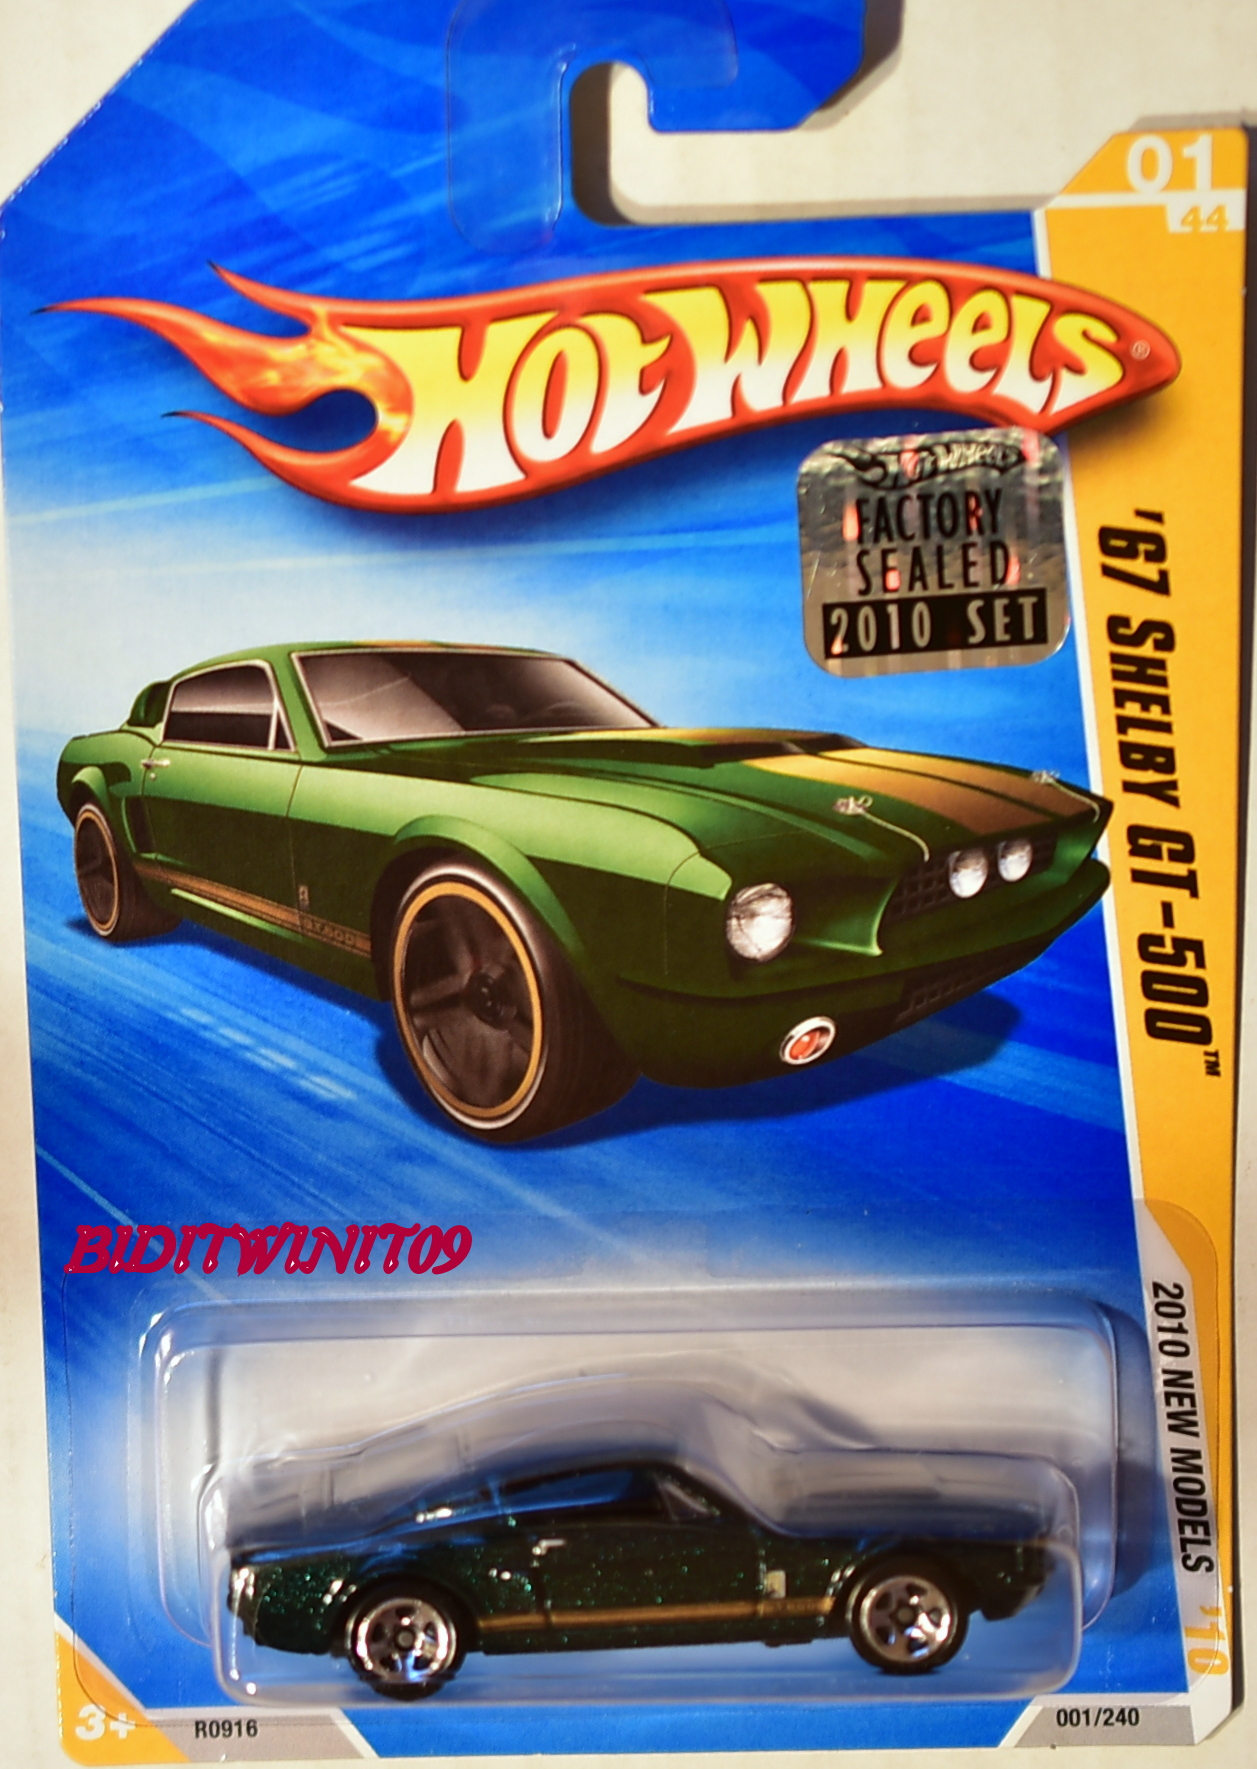 HOT WHEELS 2010 NEW MODELS '67 SHELBY GT-500 GREEN FACTORY SEALED E+